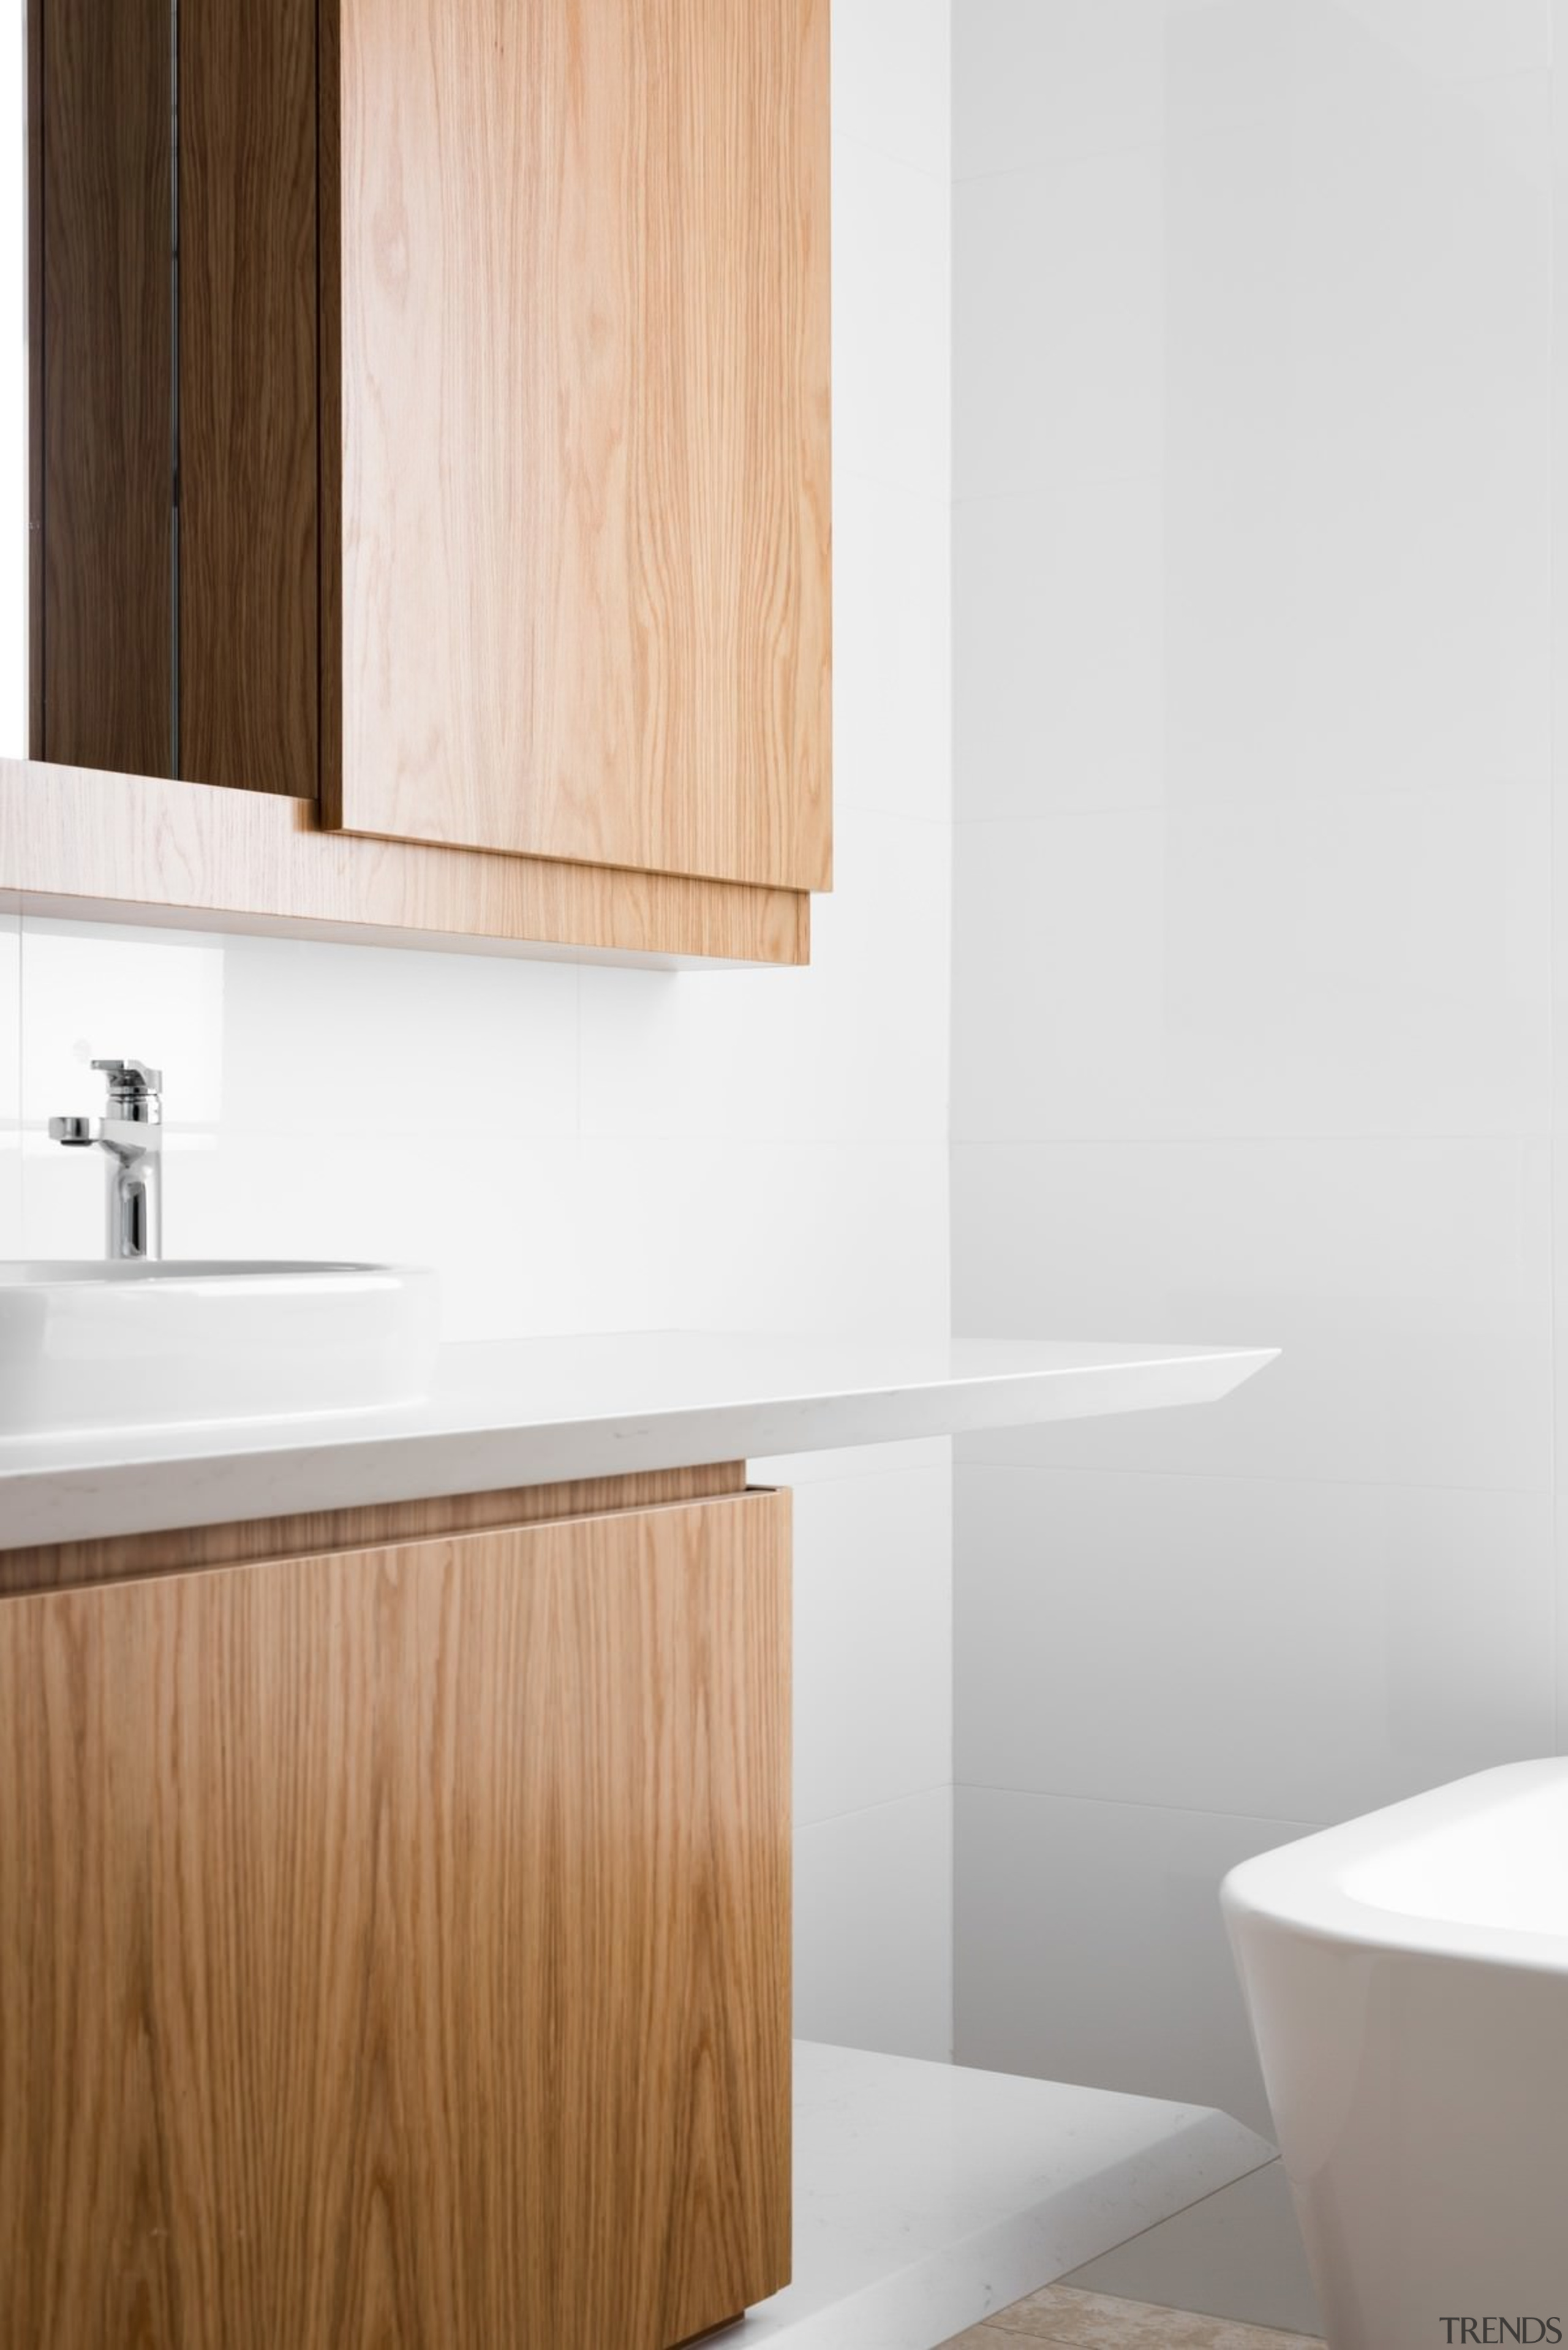 Wood cabinets in the bathroom are a nice bathroom, bathroom accessory, bathroom cabinet, bathroom sink, floor, hardwood, interior design, plumbing fixture, plywood, product, product design, sink, tap, tile, wall, wood, white